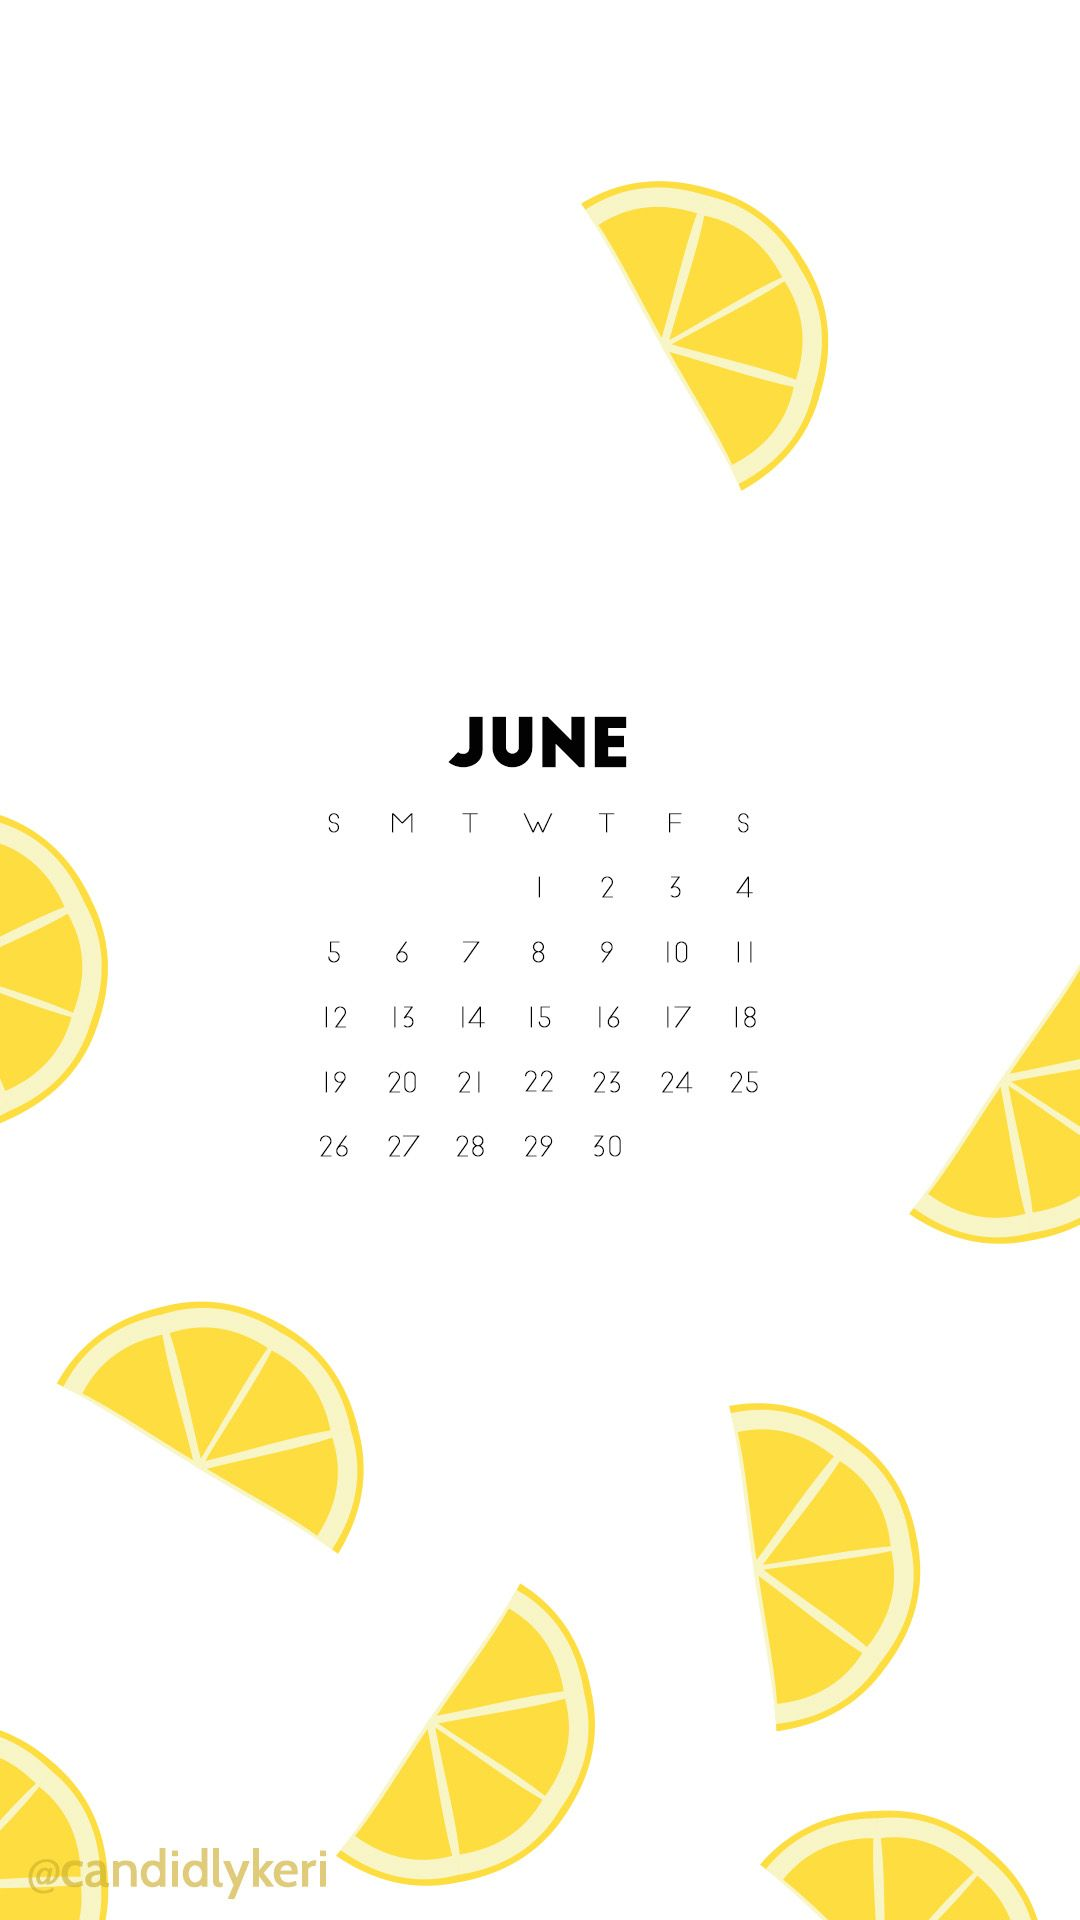 Lemon fun lemonade june 2016 calendar wallpaper free download for lemon fun lemonade june 2016 calendar wallpaper free download for iphone android or desktop background on voltagebd Gallery